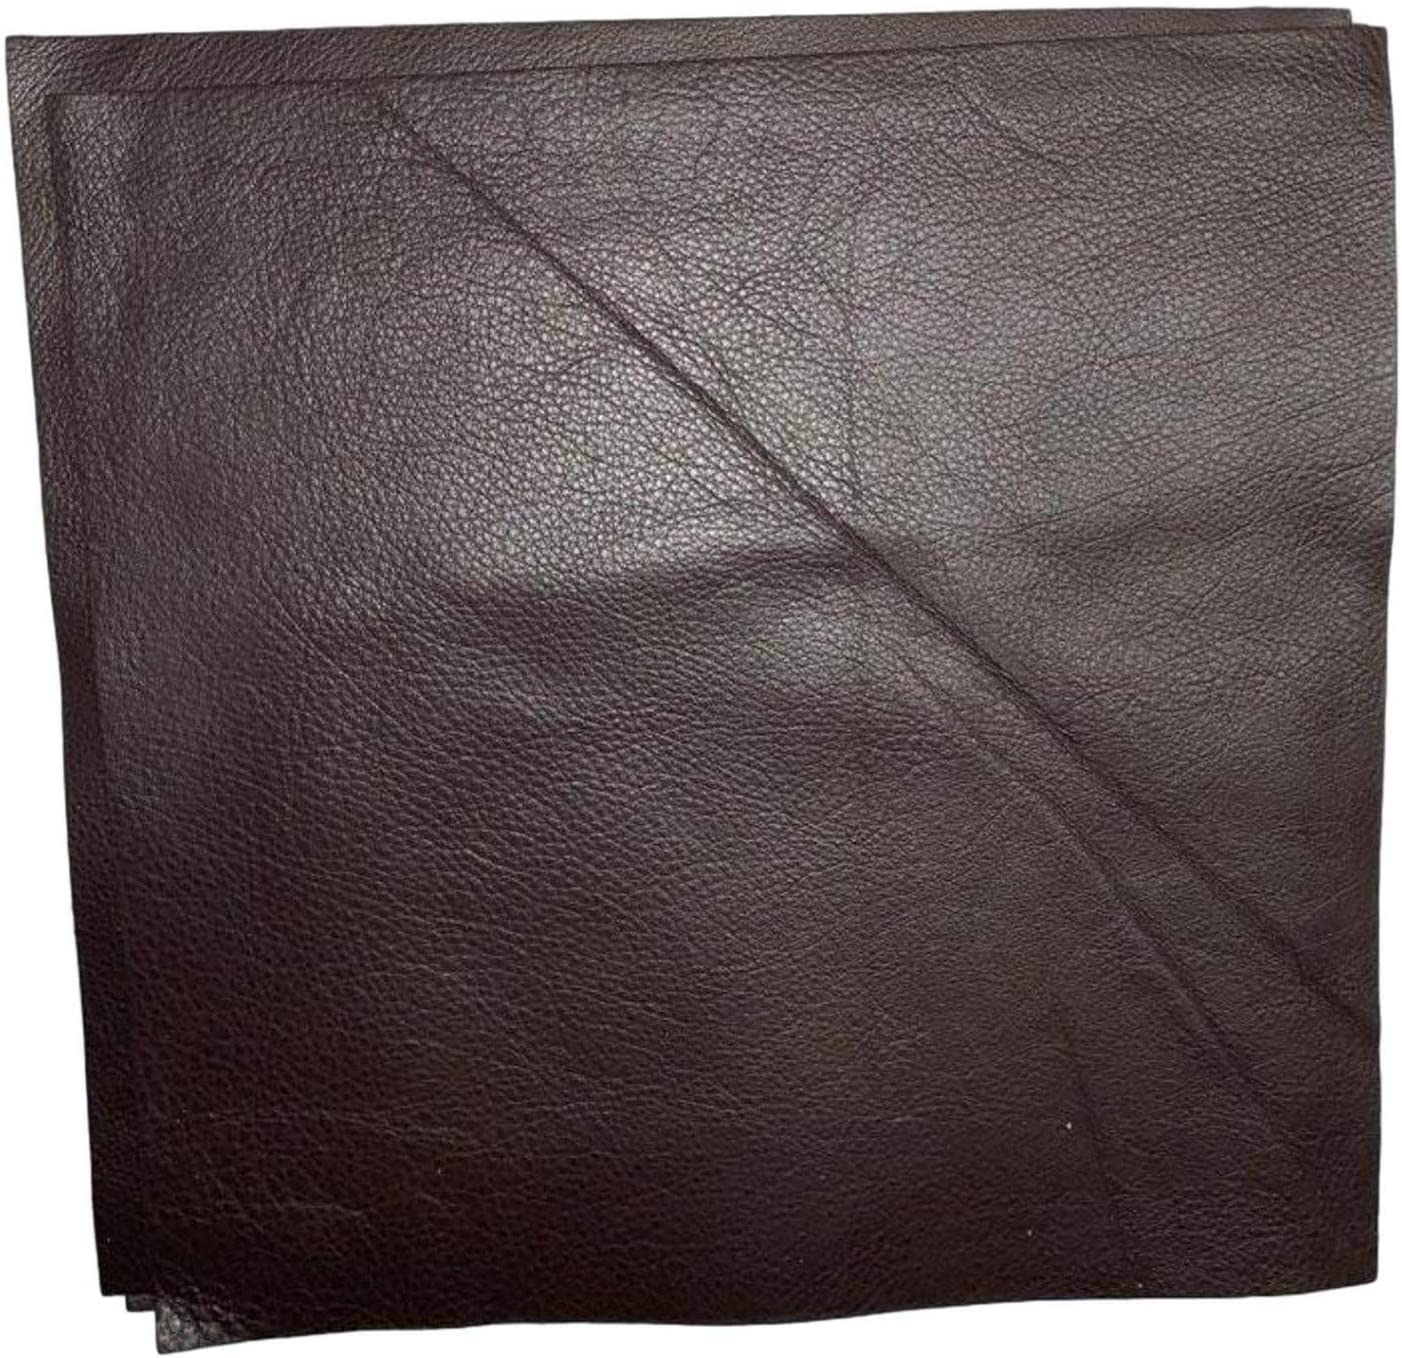 TOFFEE BROWN Textured Leather Roll Leather for Earrings and Hair Bows 8x54 Leather Roll